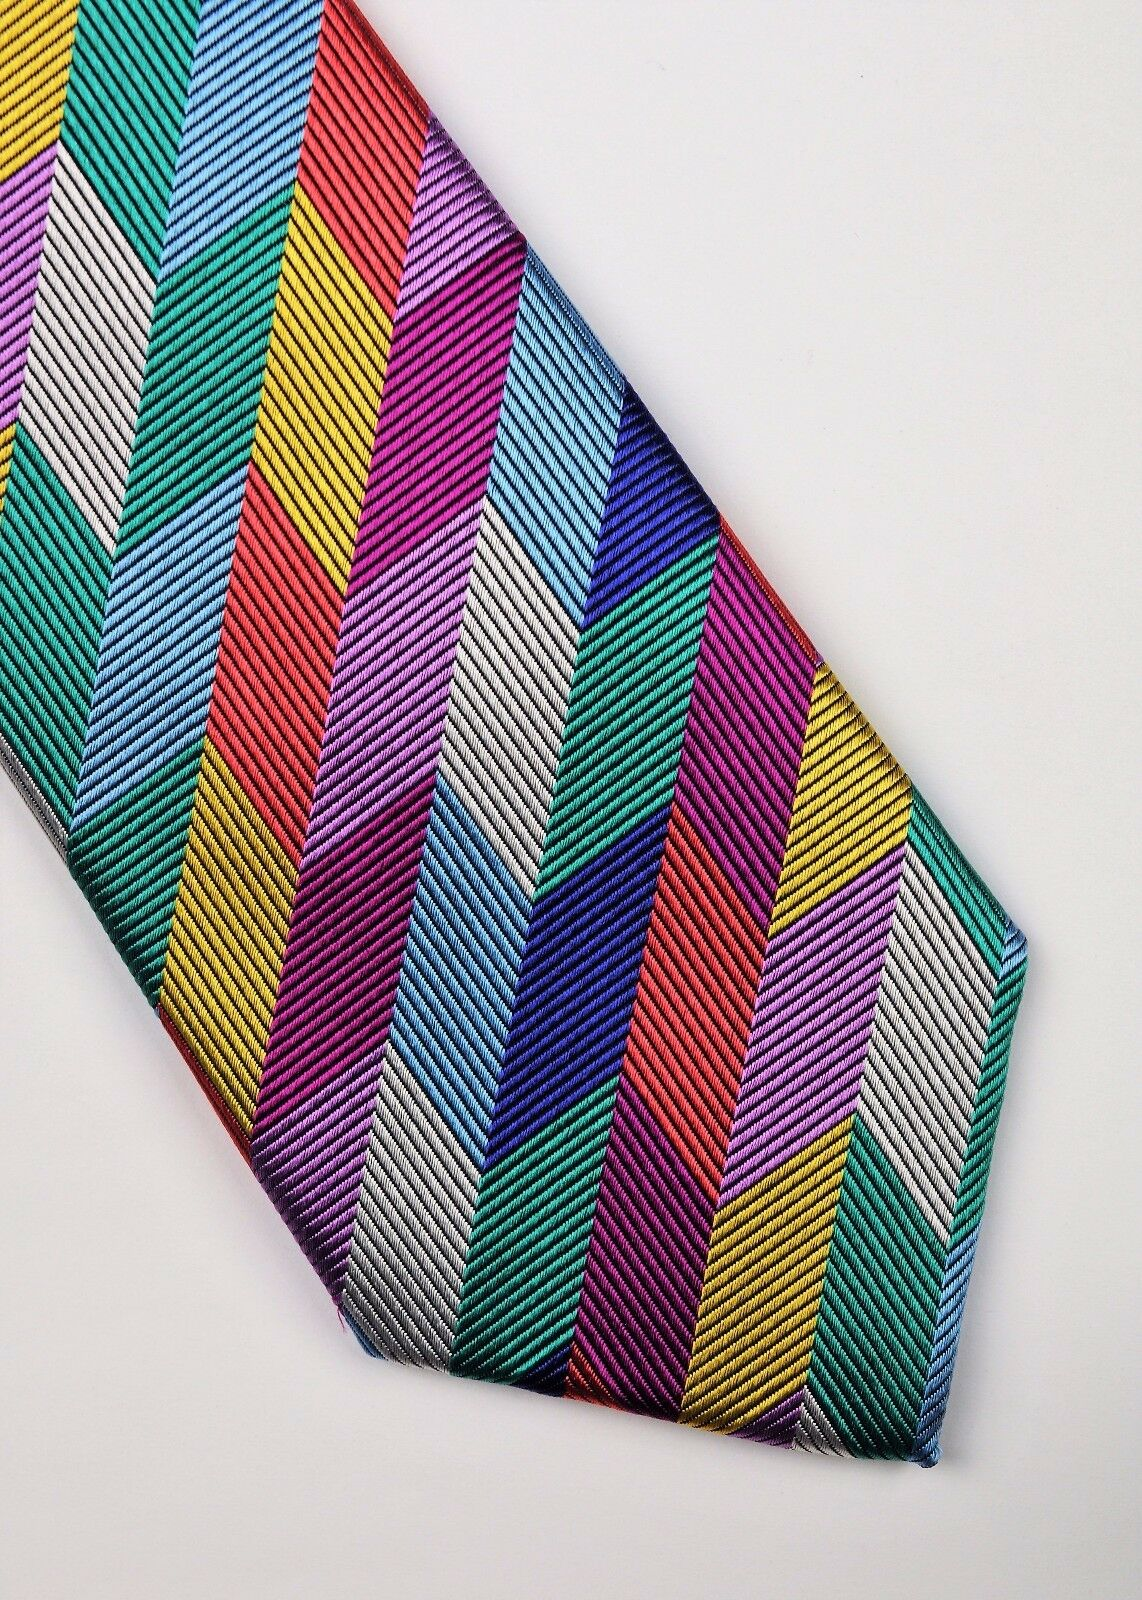 Ties , Mens Accessories , Clothing, Shoes & Accessories